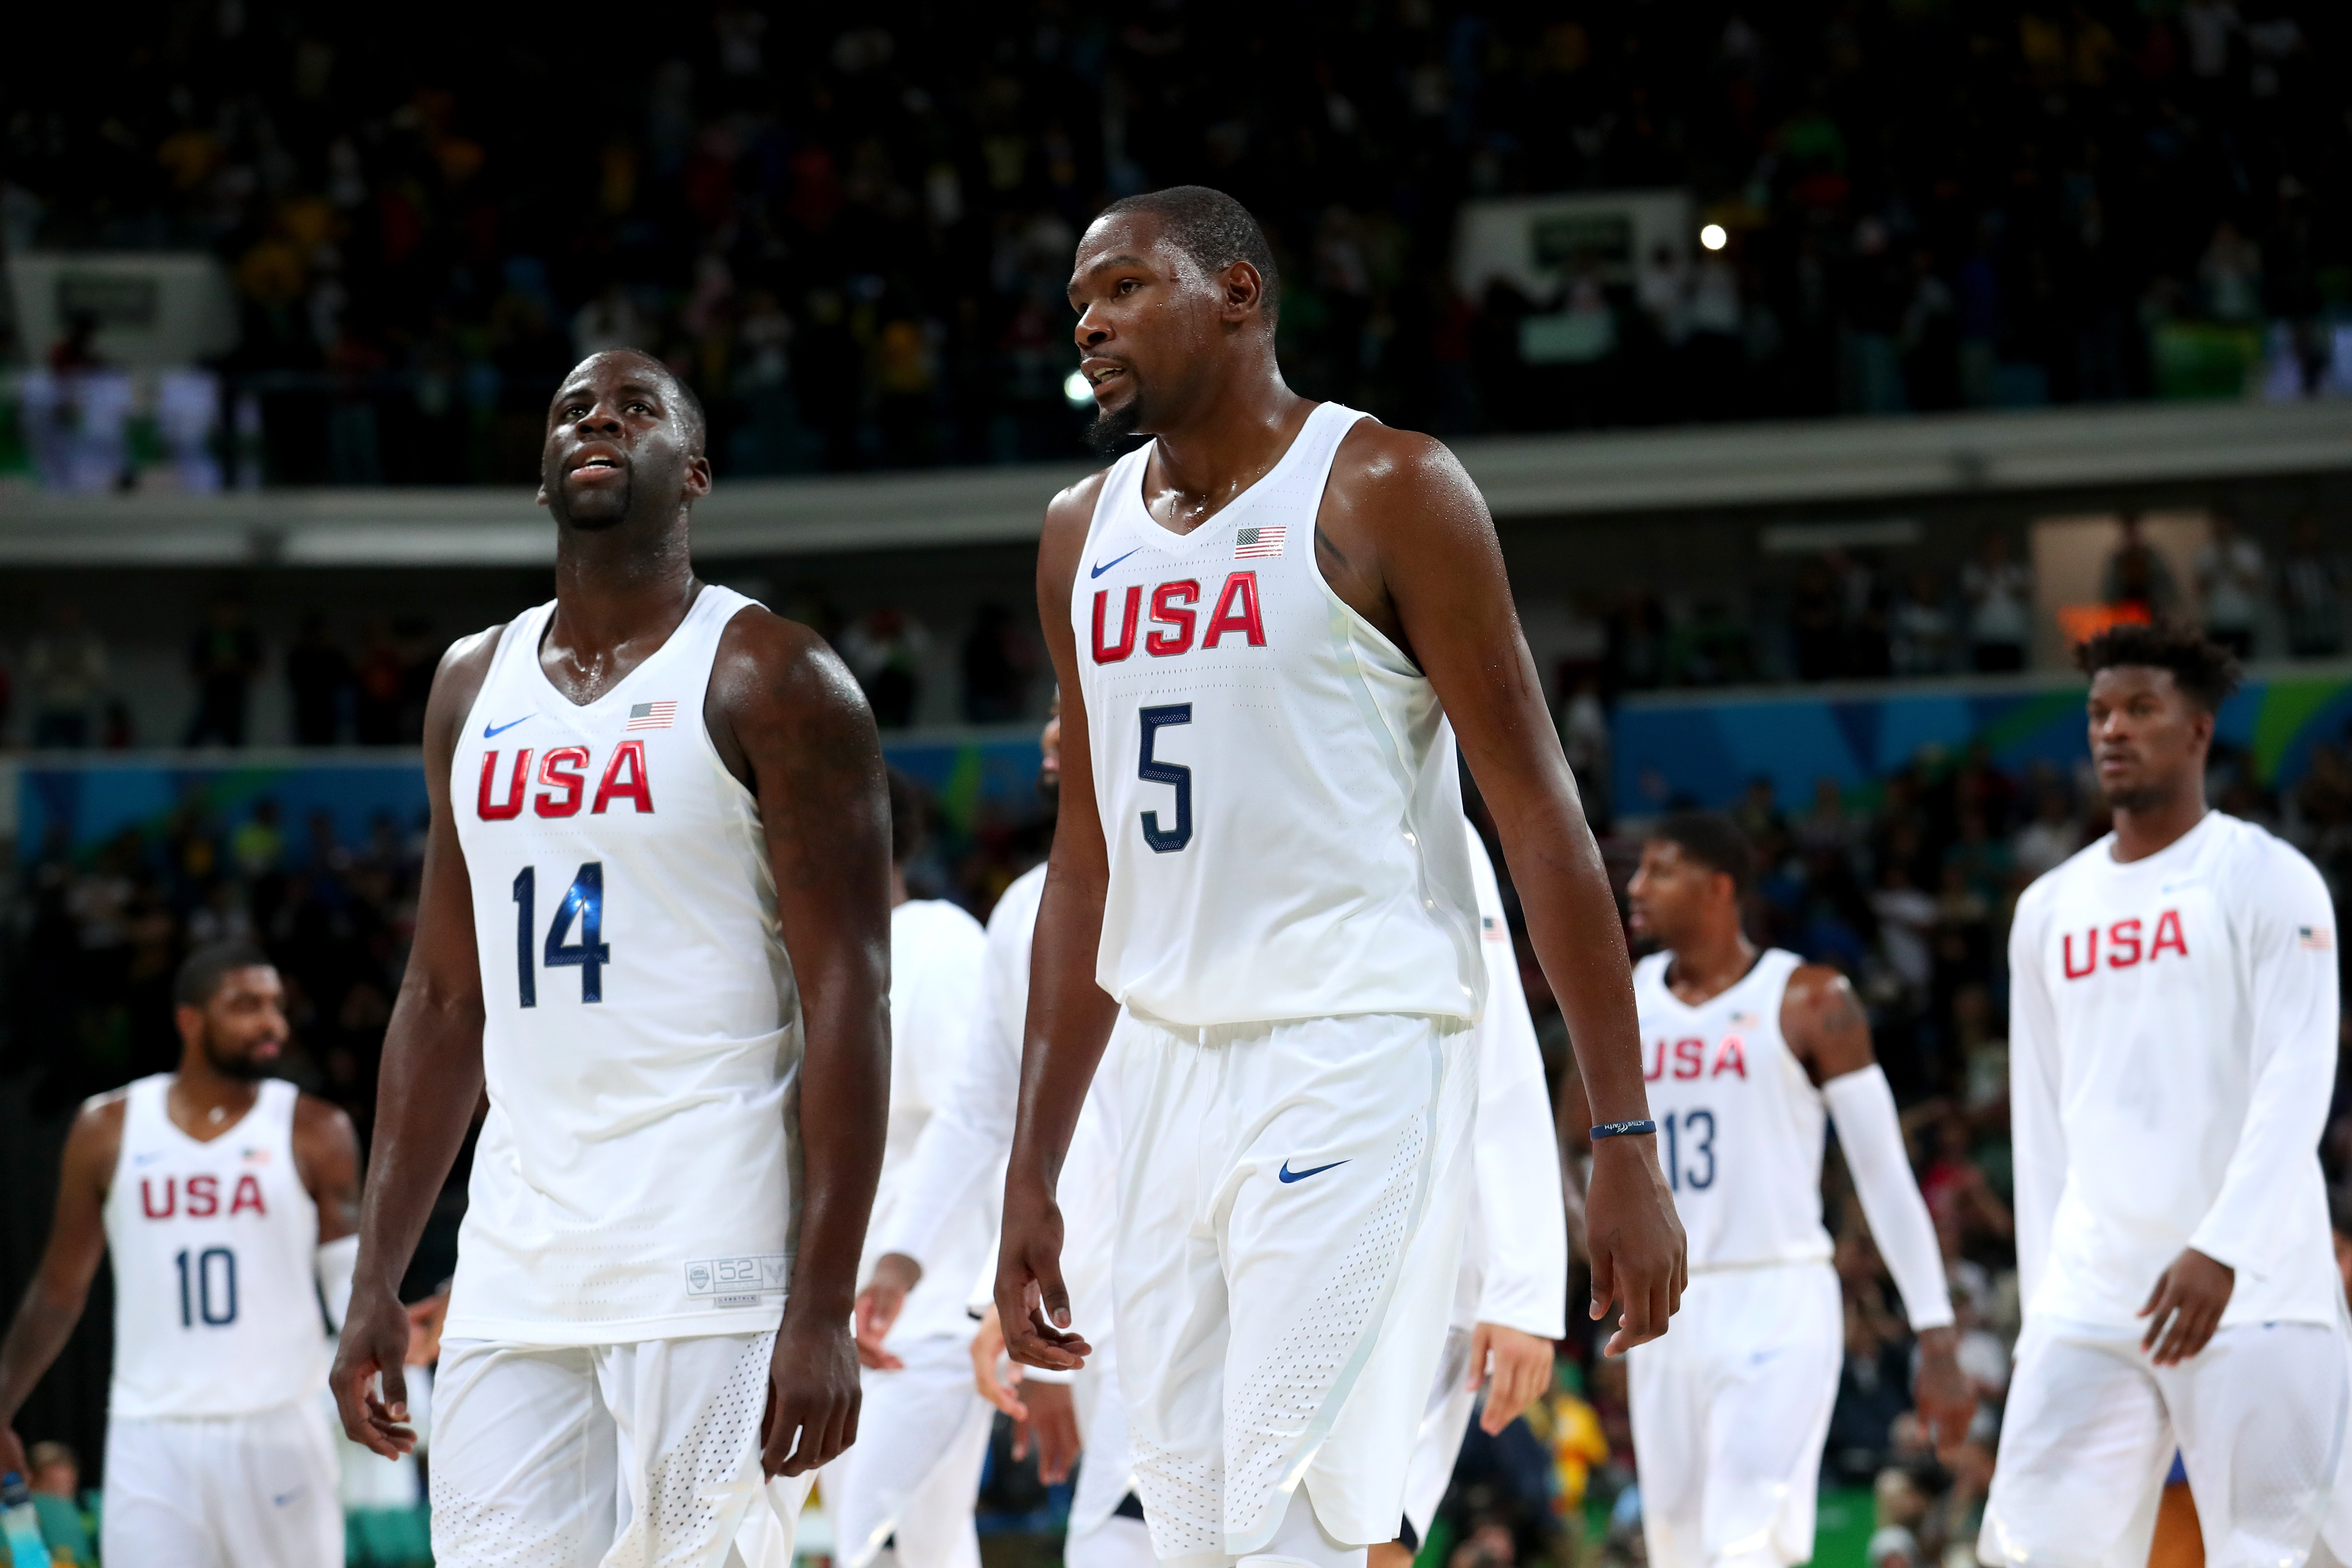 Basketball - Olympics: Day 7